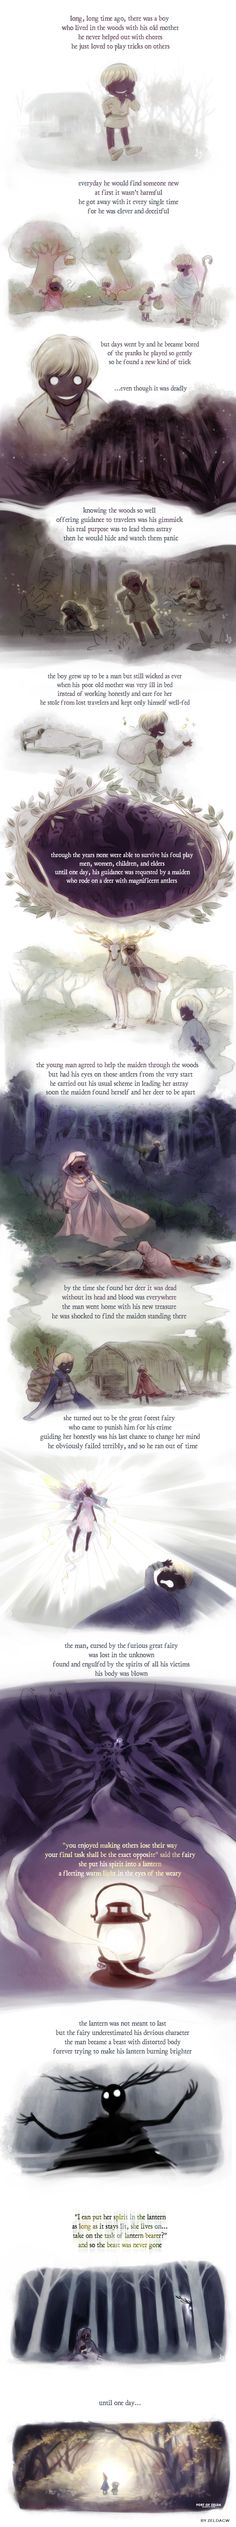 "From a boy to the Beast by zeldacw.deviantart.com on @DeviantArt ""this idea came to me after watching Over the Garden Wall."""